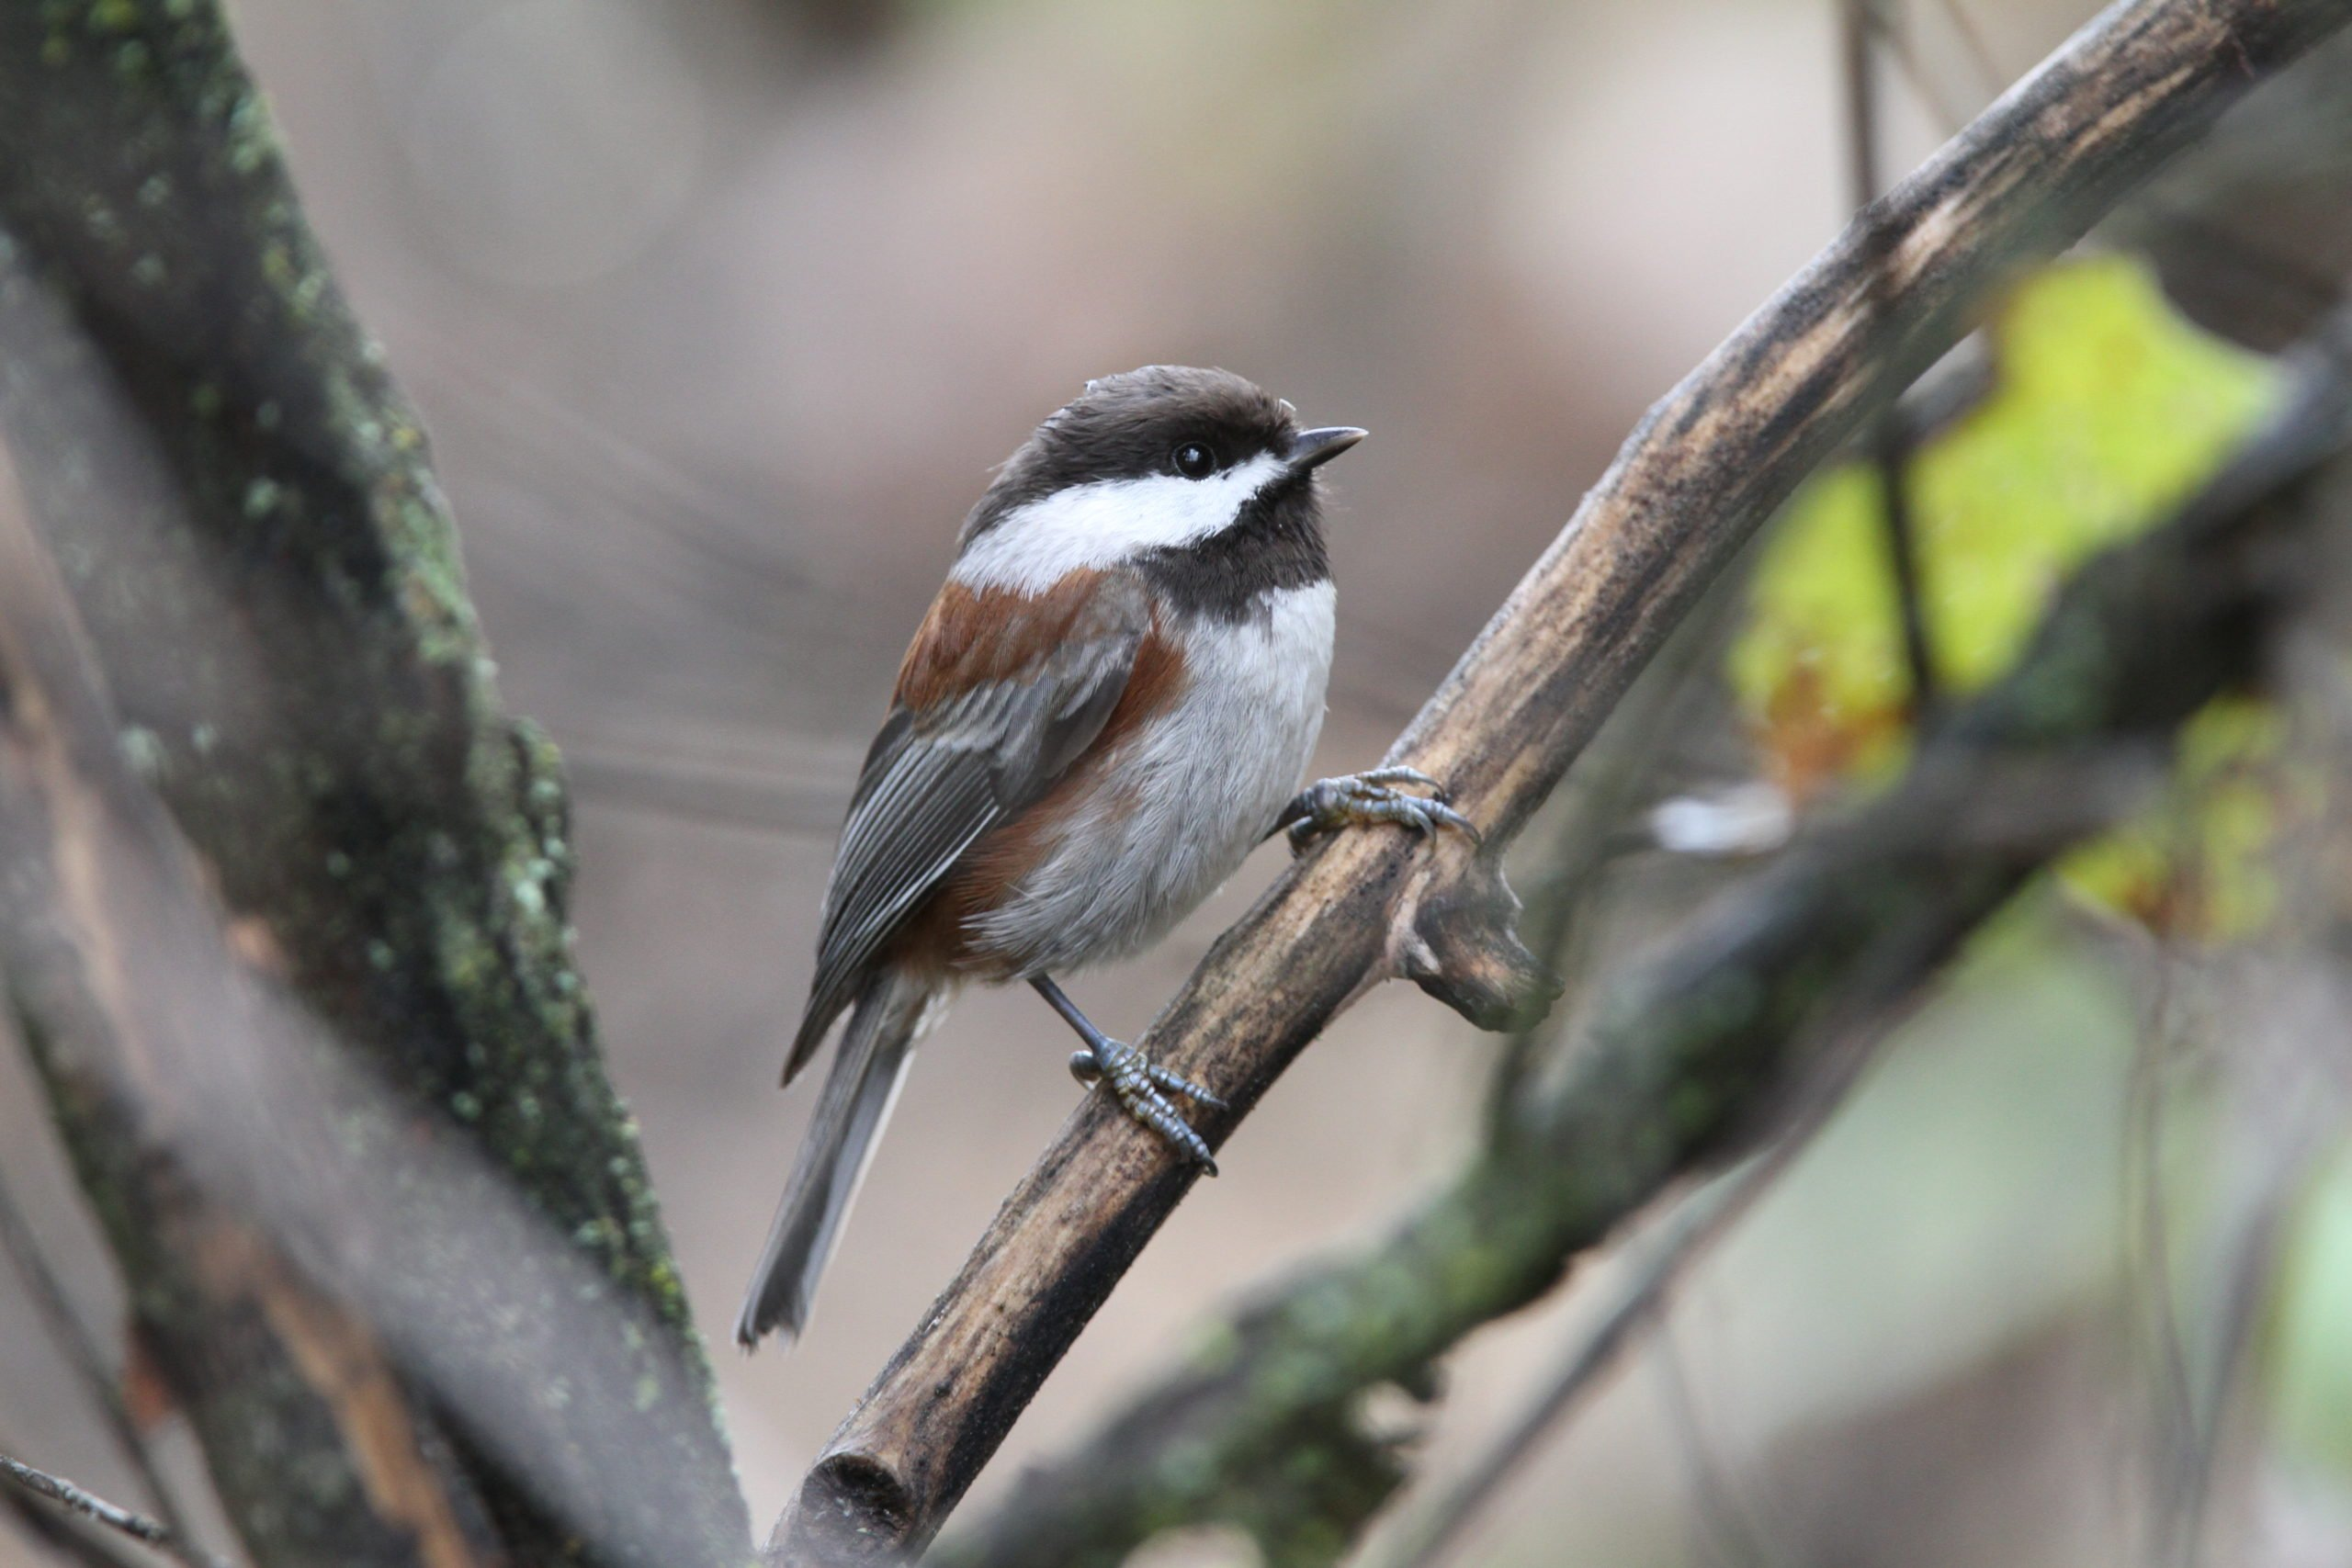 Chesnut-backed Chickadee